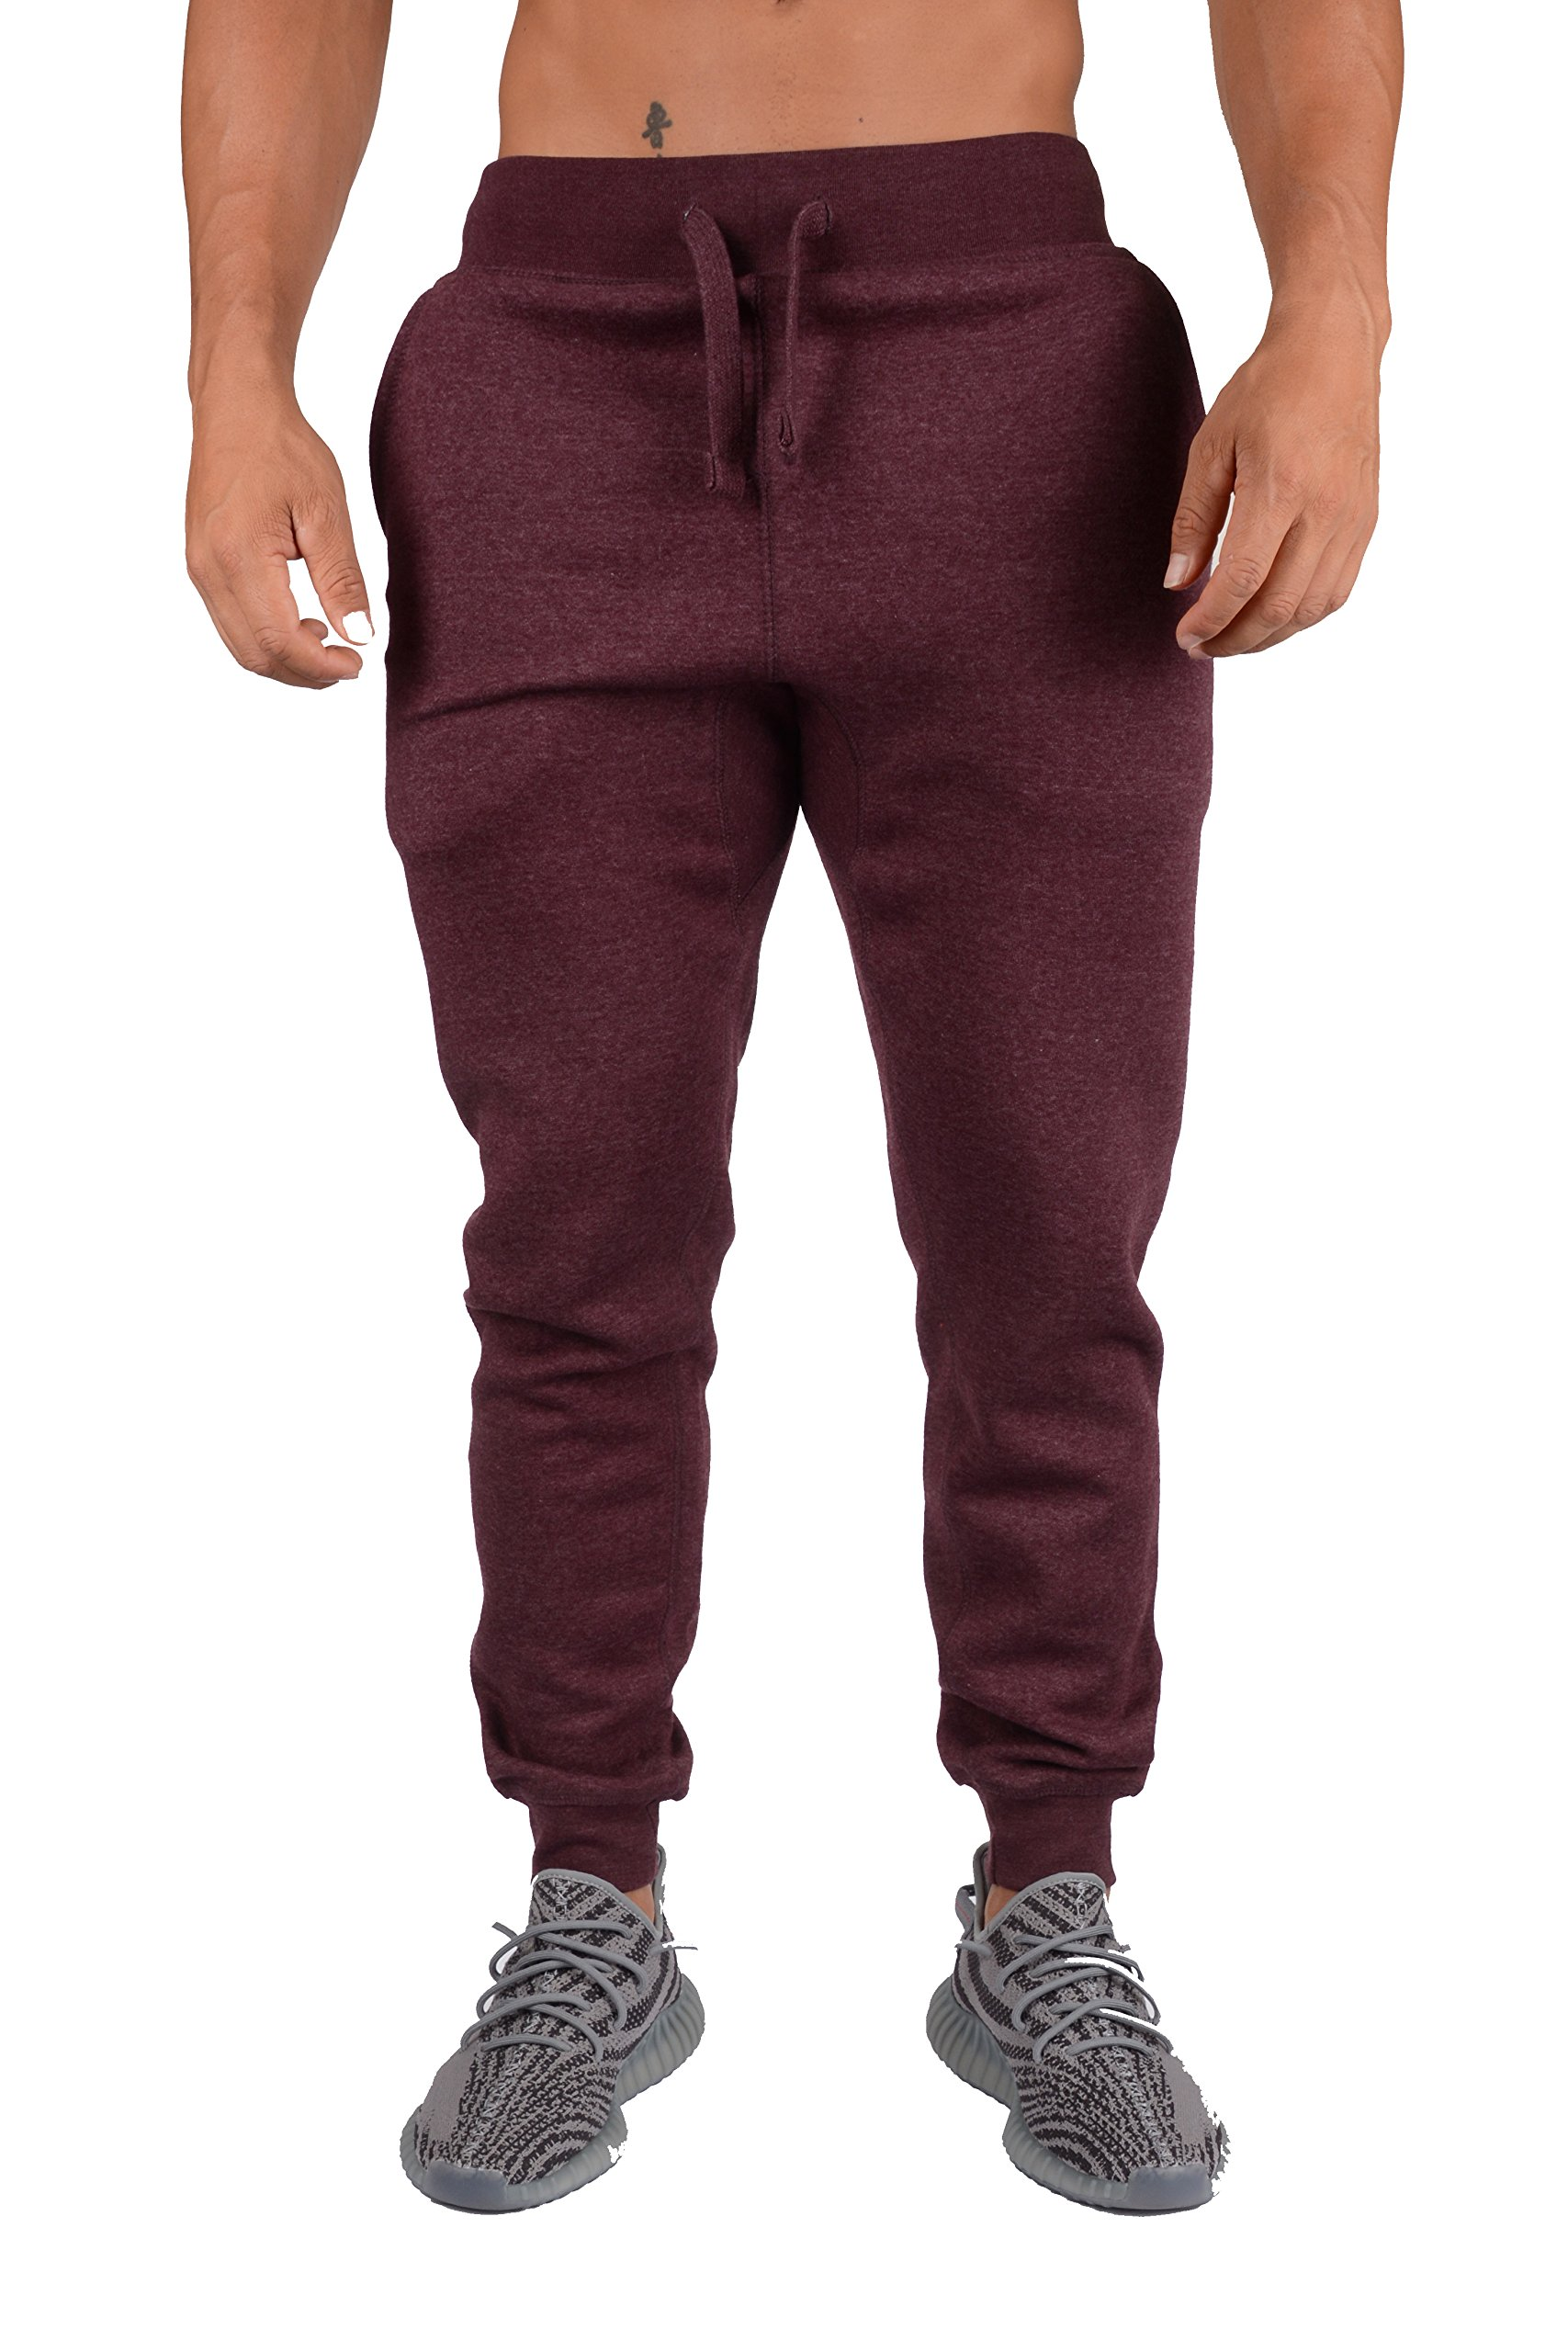 YoungLA Mens Slim Fit Joggers Fitness Activewear Sports Fleece Sweatpants for Gym Training Burgundy Heather Small by YoungLA (Image #2)